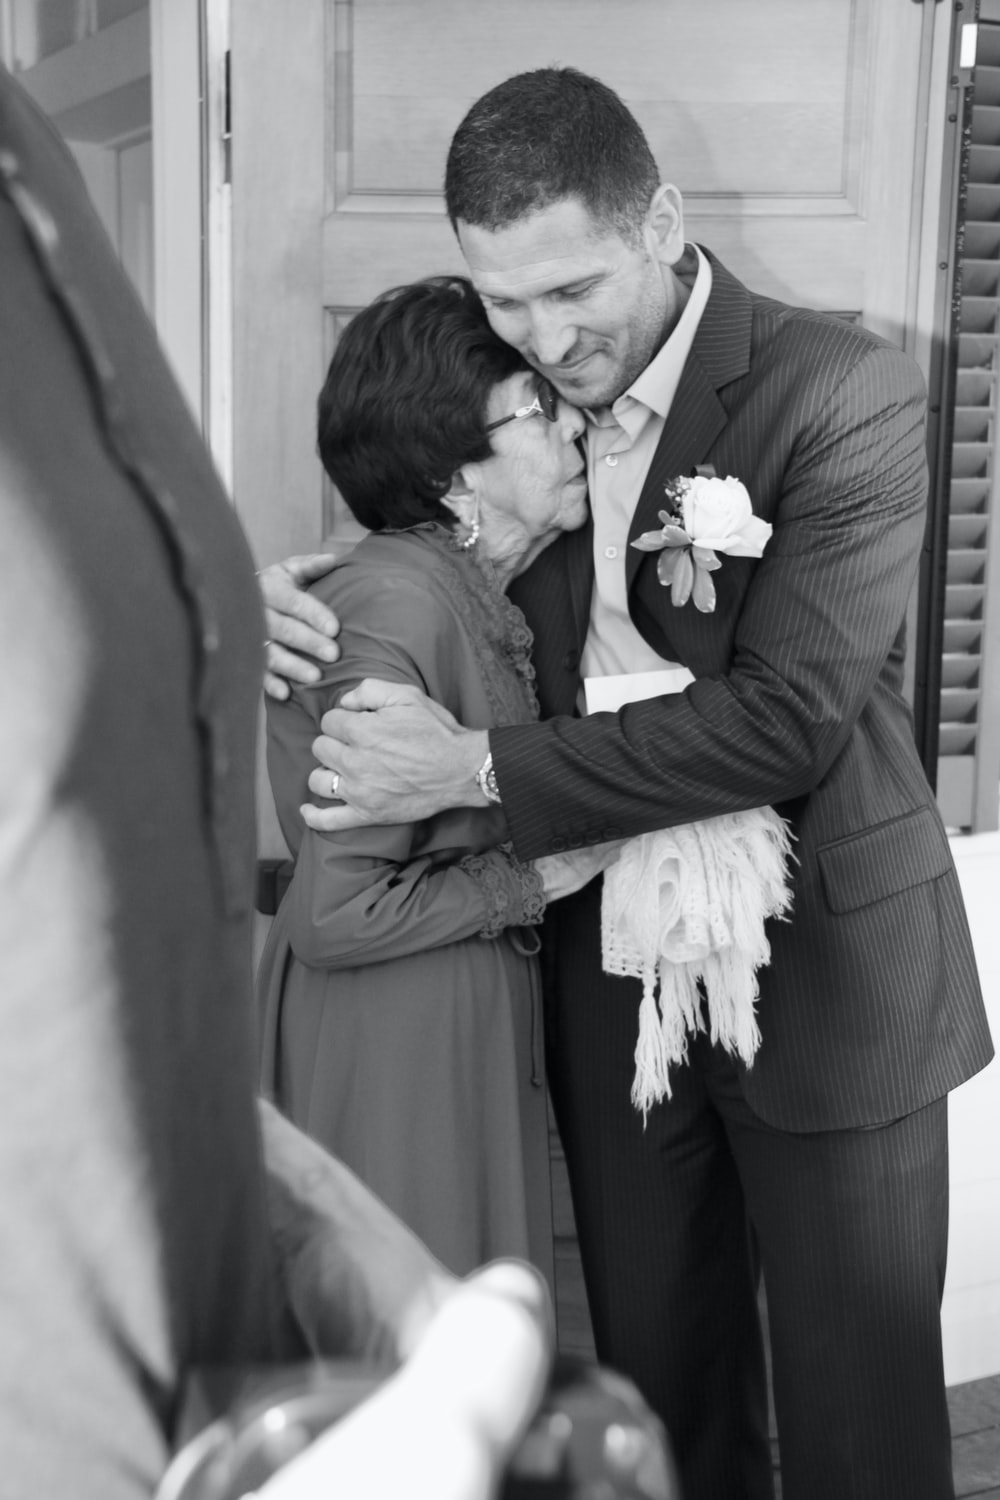 man in suit kissing woman in wedding dress in grayscale photography